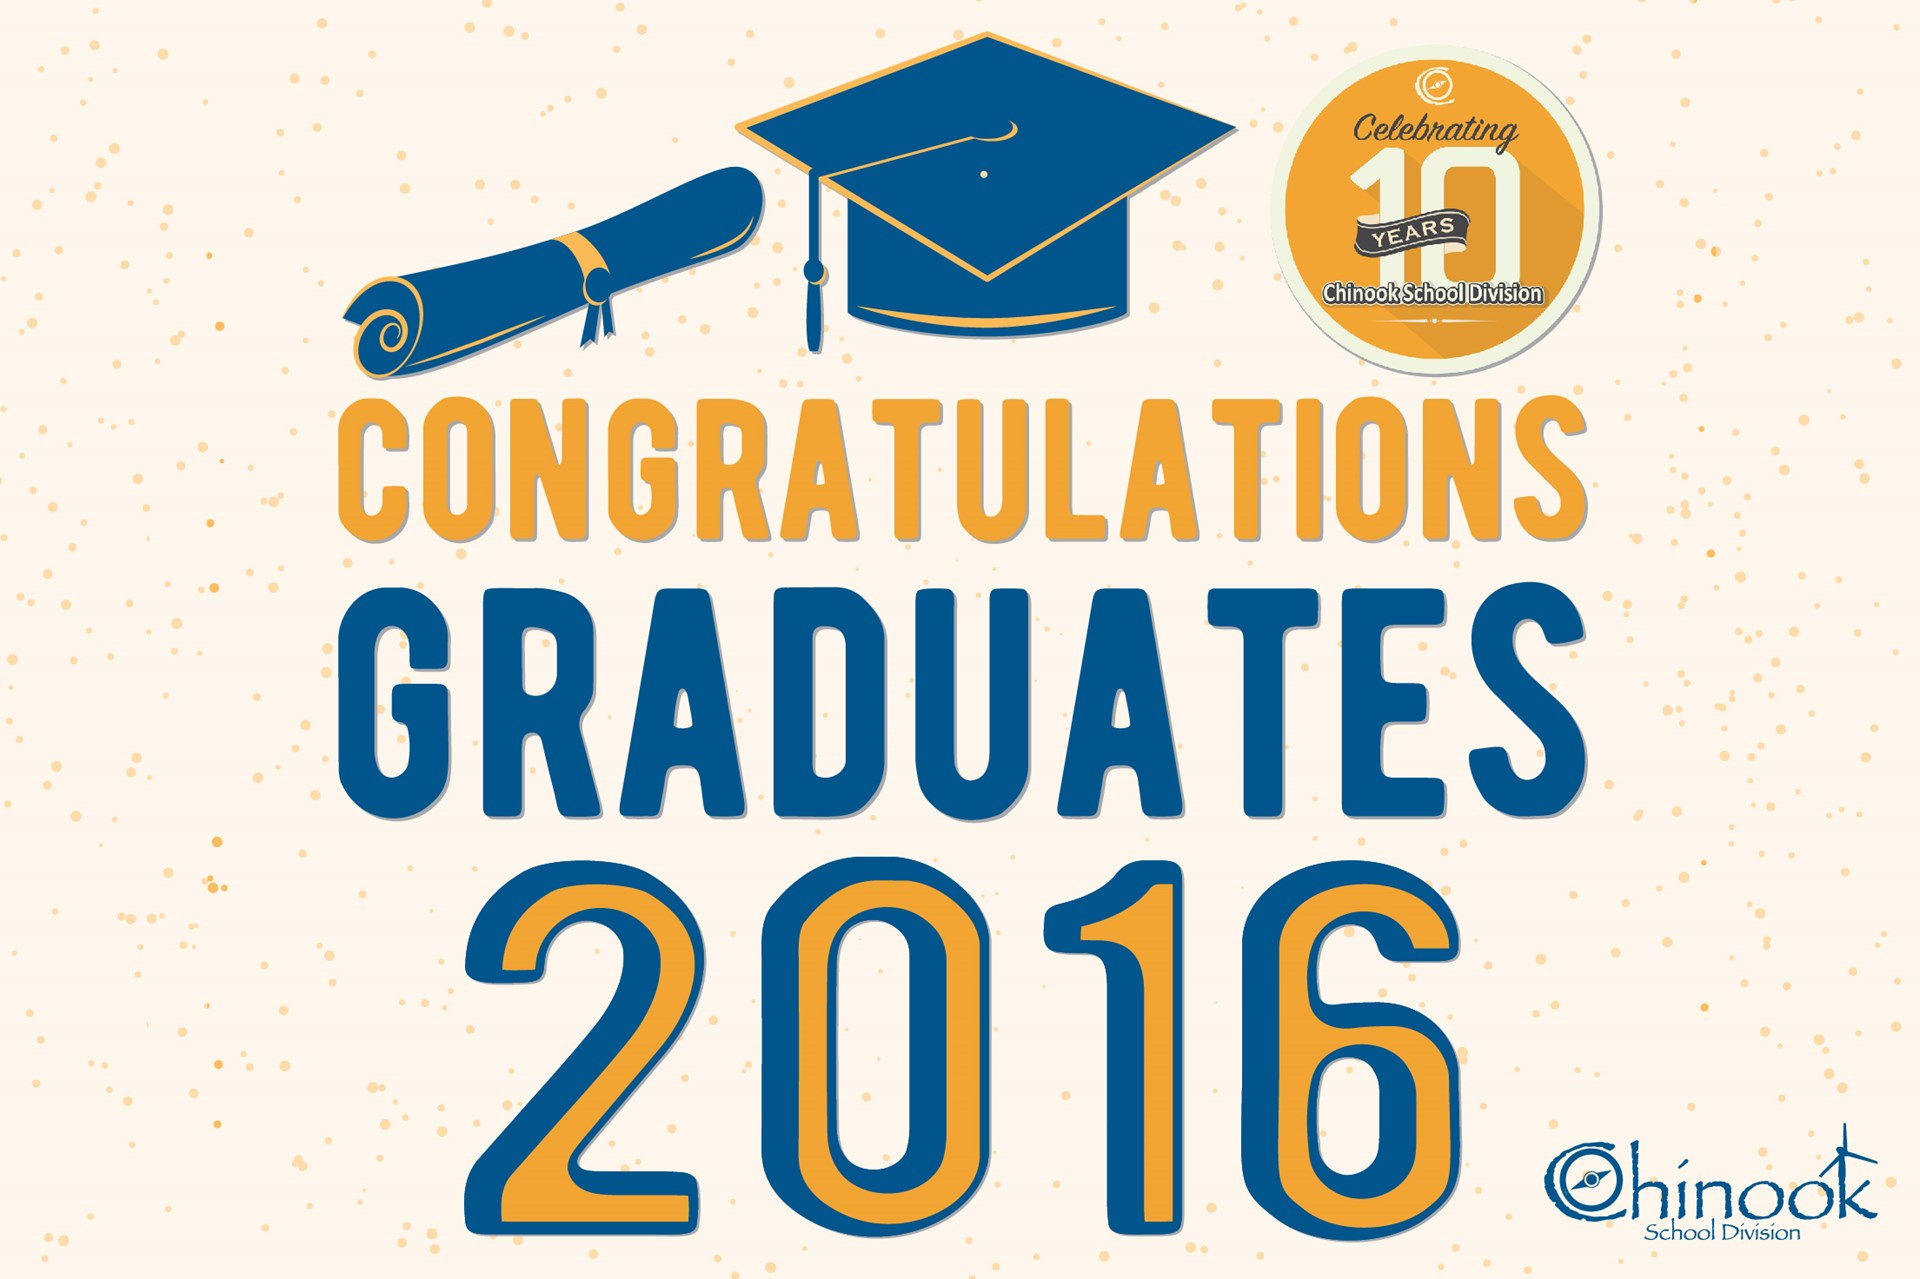 Congratulations to all Chinook 2016 Graduates!